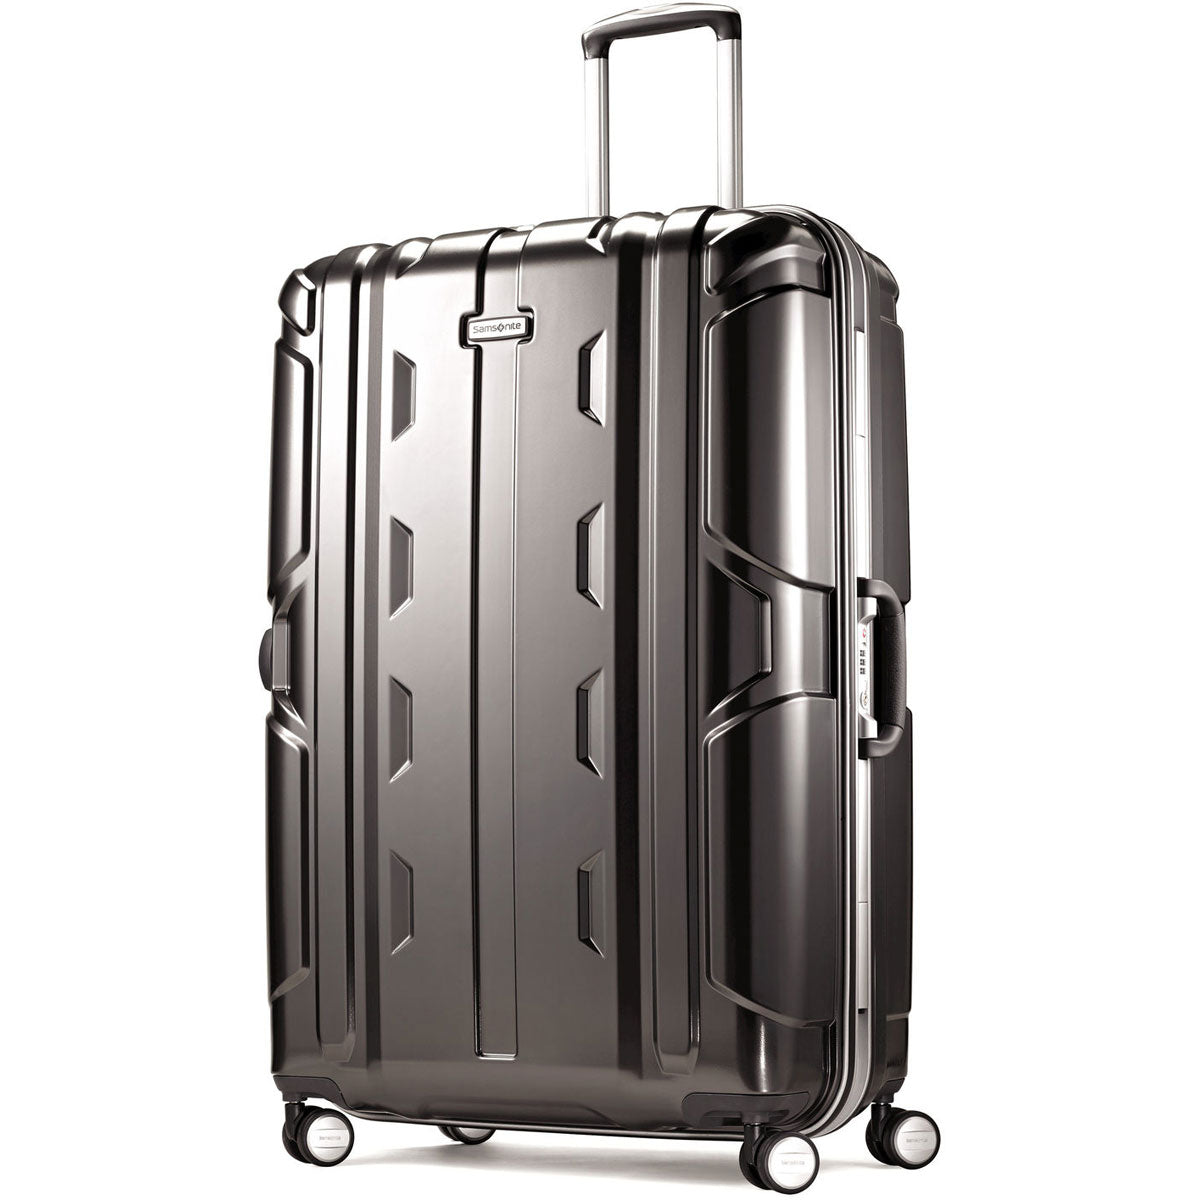 Samsonite Cruisair DLX 30in Spinner